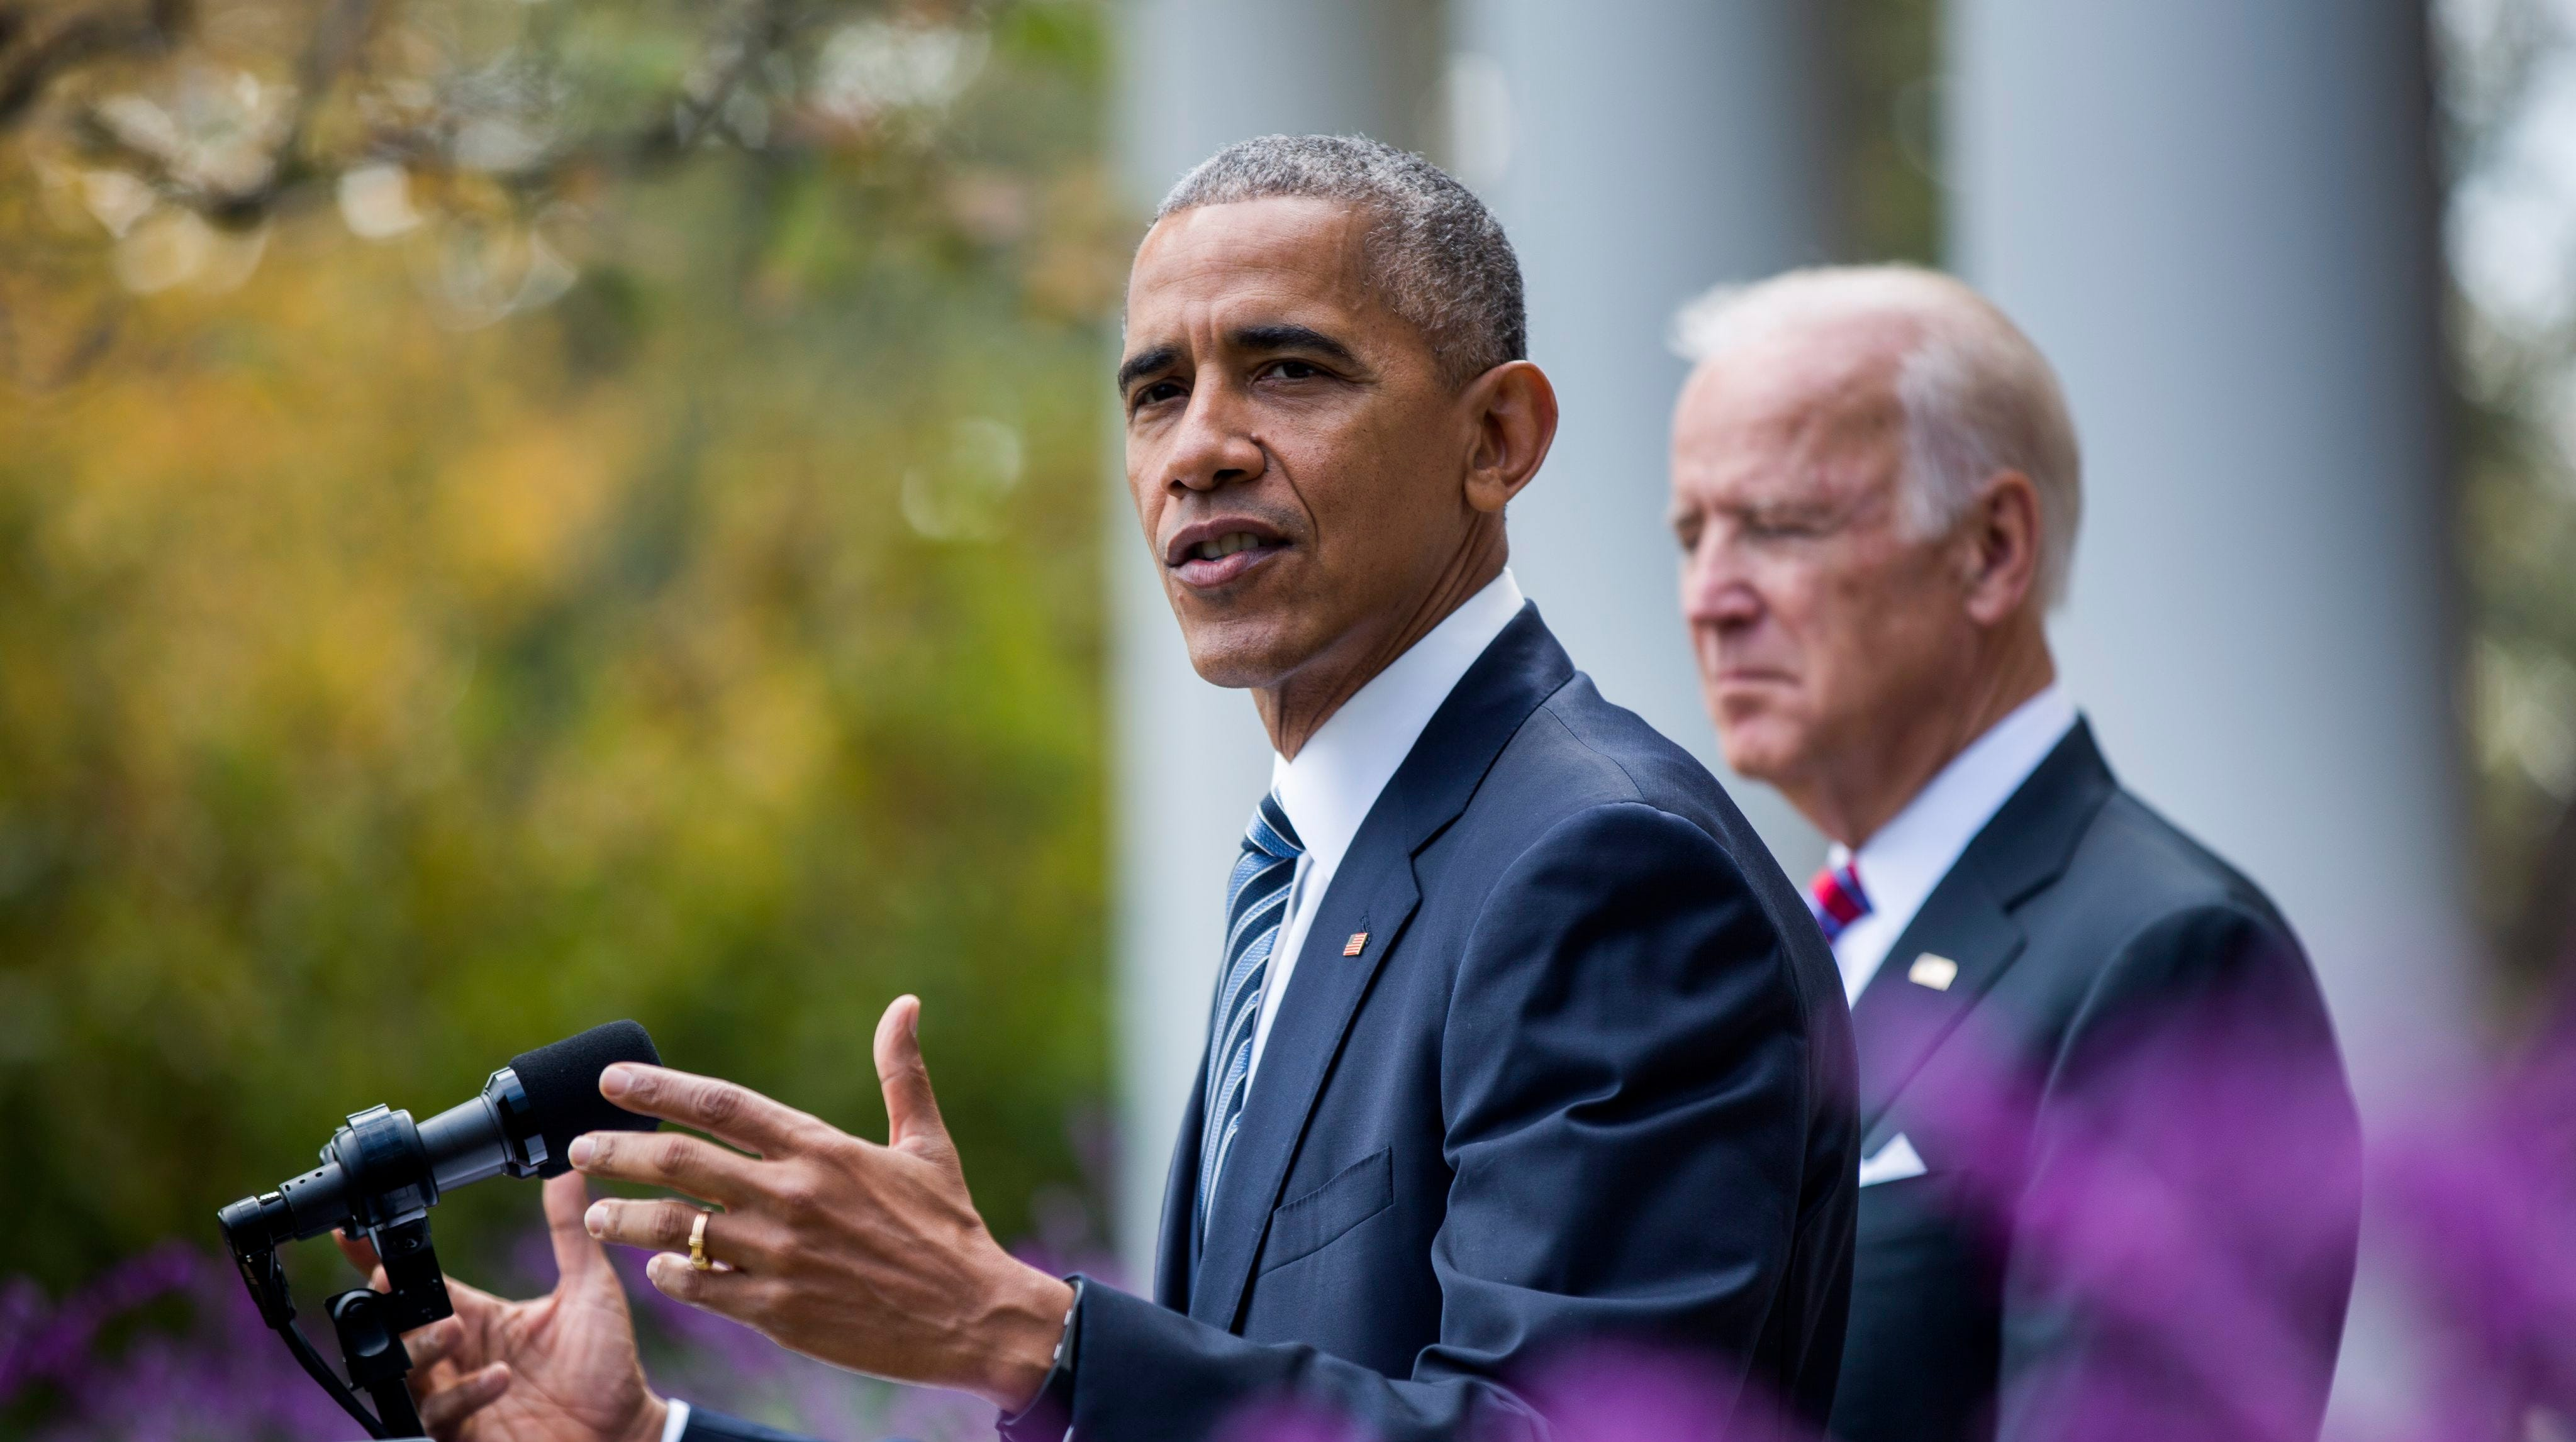 Then-President Barack Obama with his then-Vice President Joe Biden in the Rose Garden of the White House the day after the 2016 presidential election.